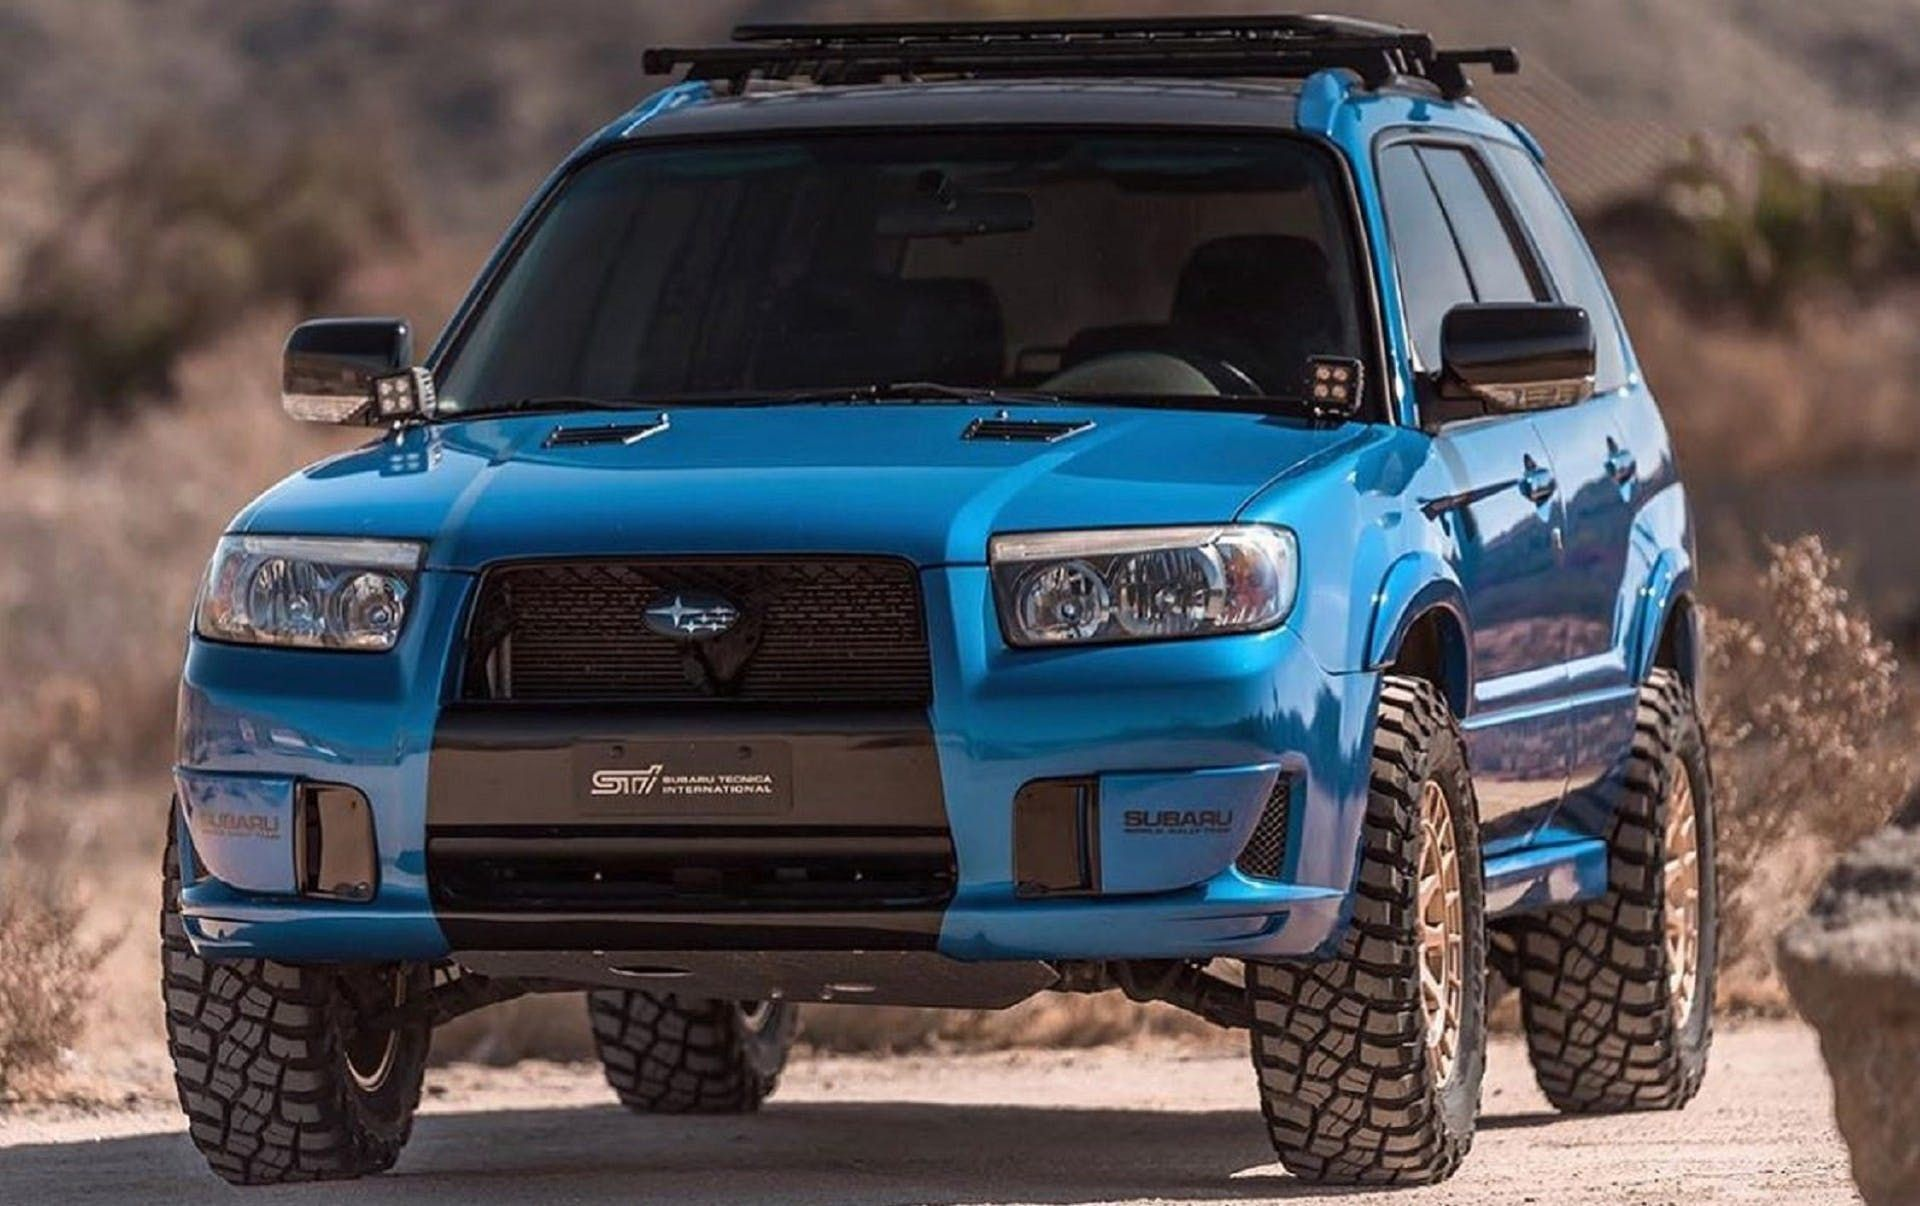 This Oregon Shop Builds Awesome Lifted Subarus For Off Road Junkies The Drive Subaru Forester Subaru Forester Xt Subaru